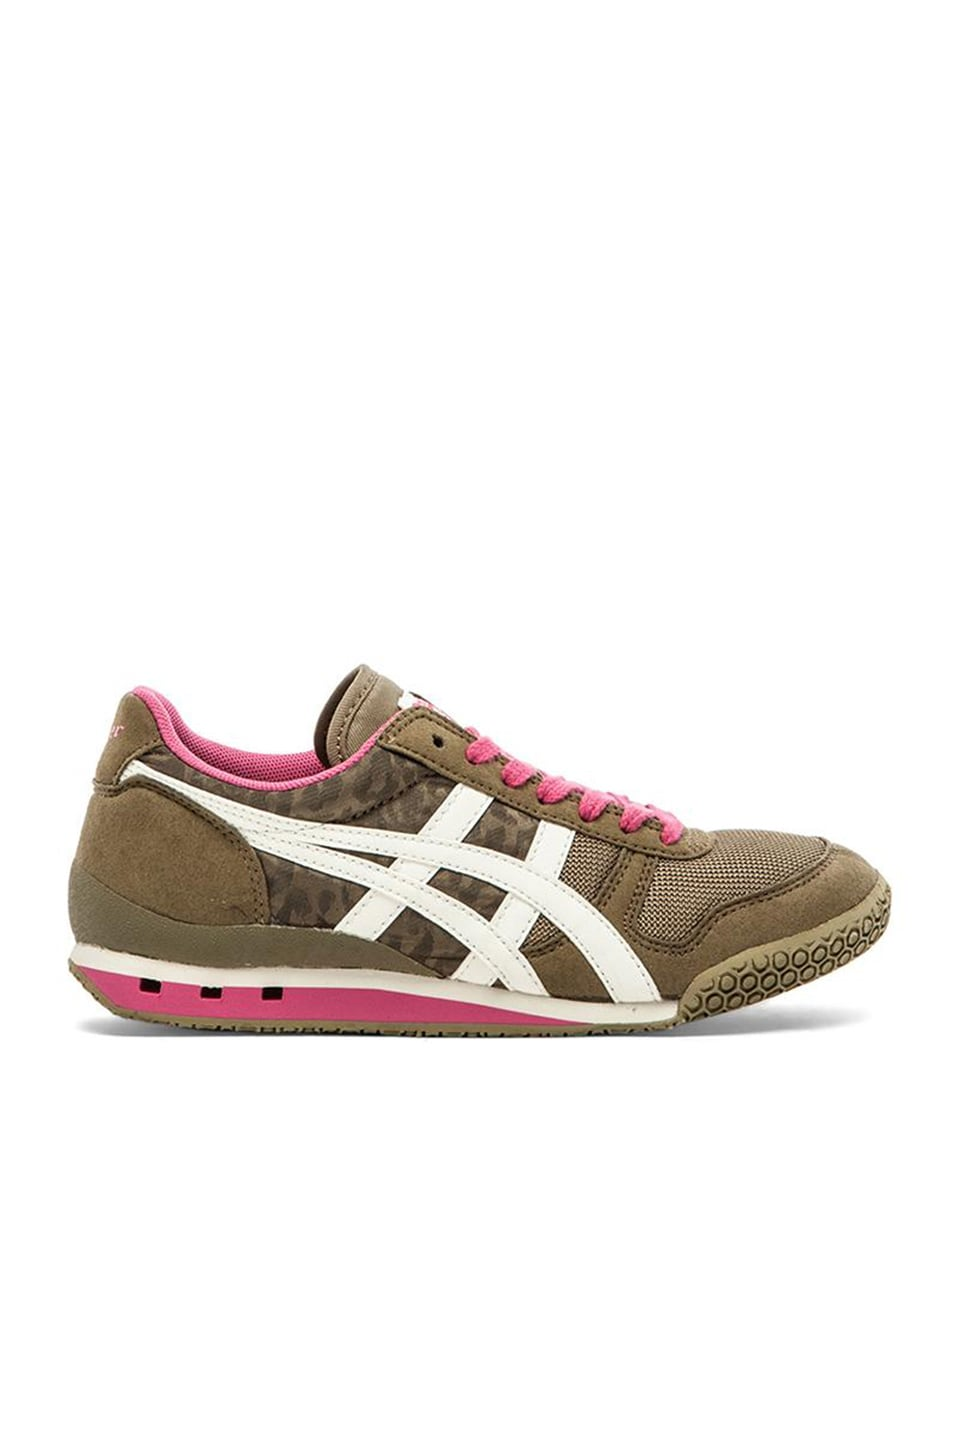 Onitsuka Tiger Ultimate 81 Sneaker in Olive Leopard & Off White